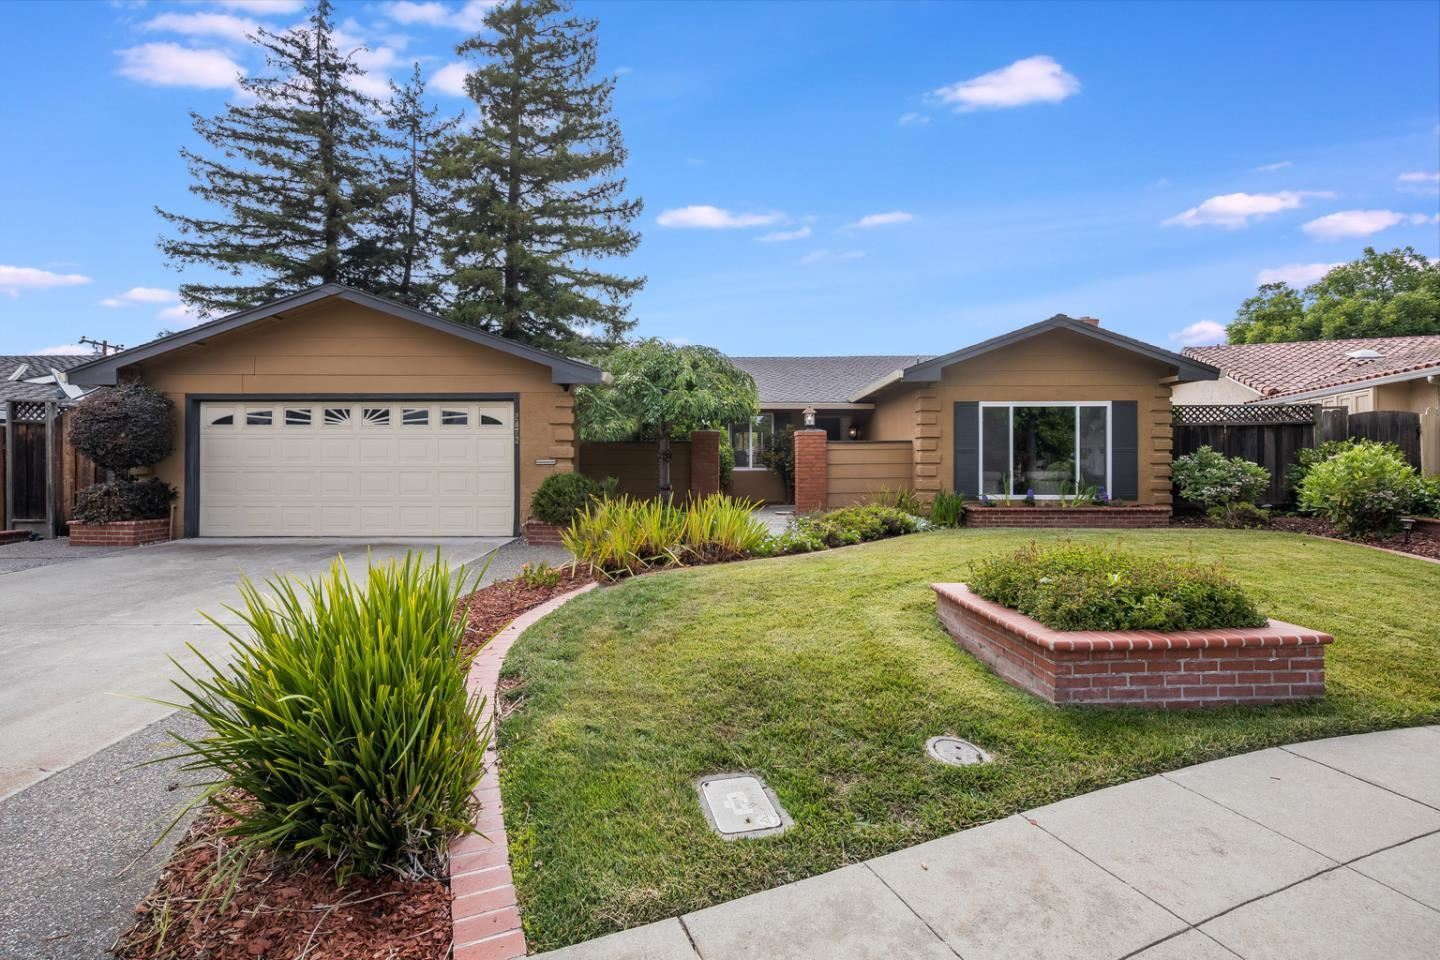 Photo for 2472 Porterfield Court, MOUNTAIN VIEW, CA 94040 (MLS # ML81853629)